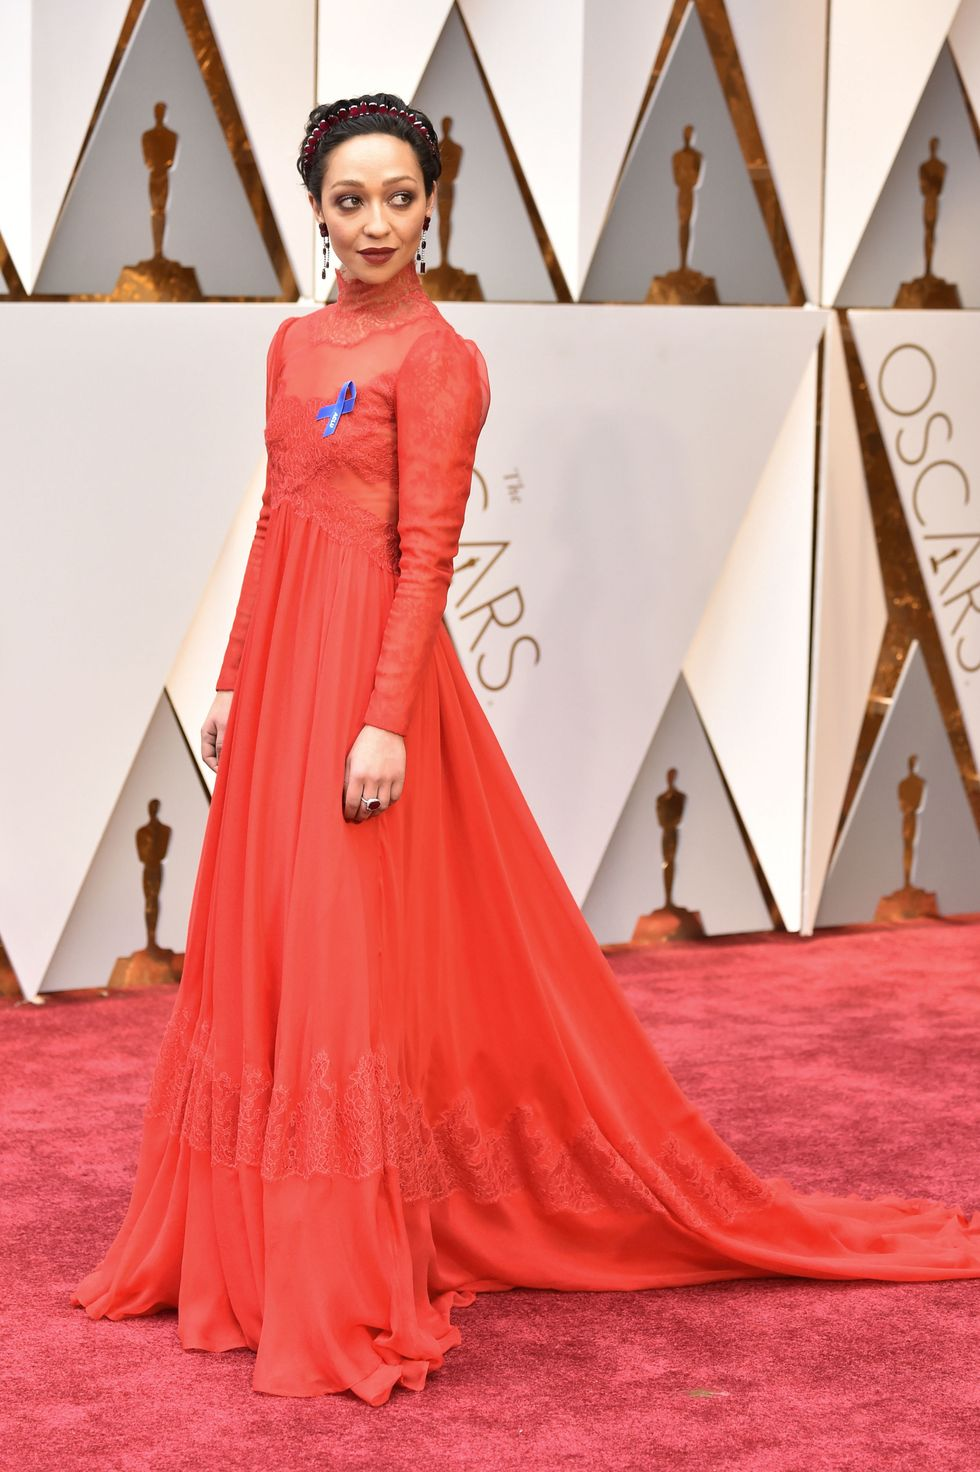 Ruth Negga, 2017 Ruth Negga made sure her appearance at the Oscars was not one to be forgotten, thanks to this lacy high-neck scarlet dress from Valentino with a romantic sweeping train and a Renaissance-style headband.